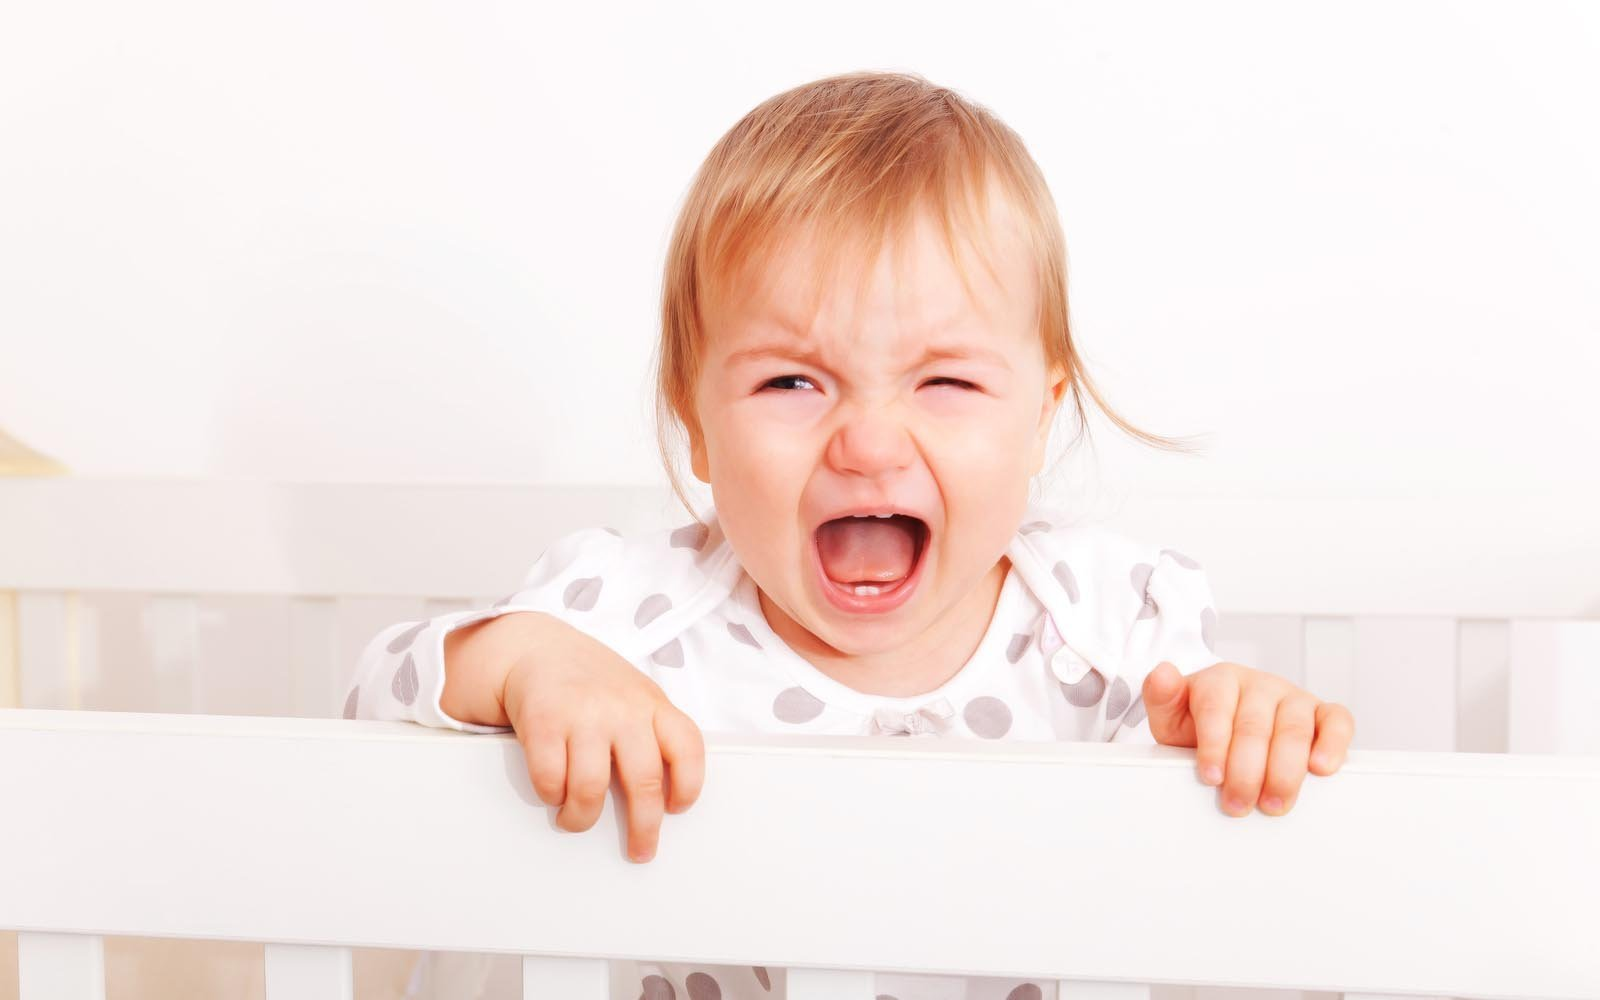 Reasons your baby's sleeping training isn't working